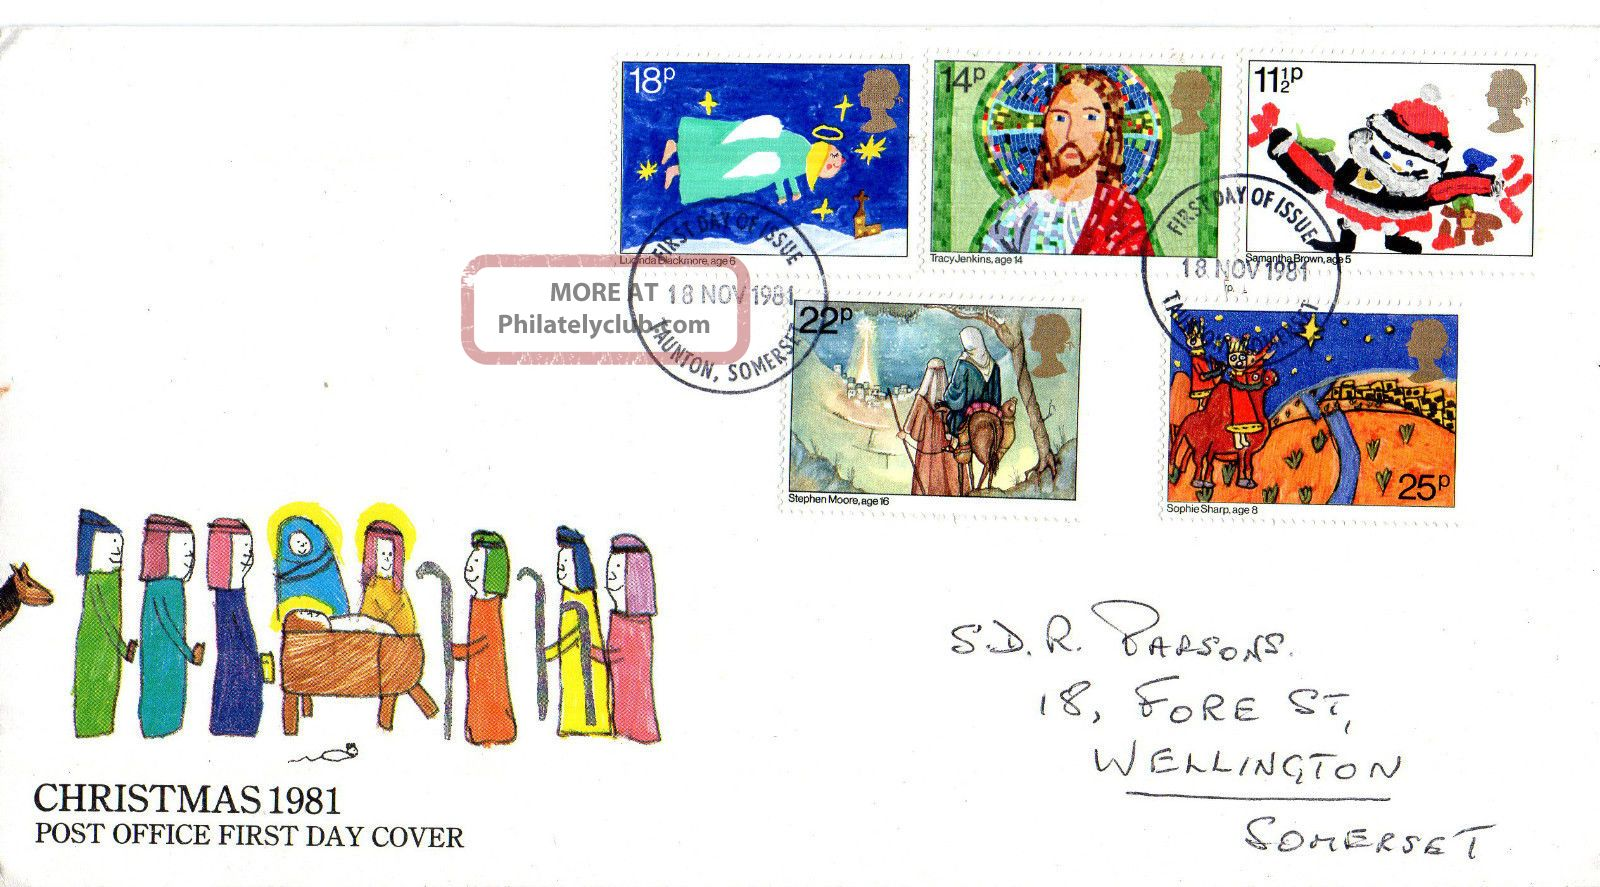 18 November 1981 Christmas Post Office First Day Cover Taunton Somerset Fdi Topical Stamps photo